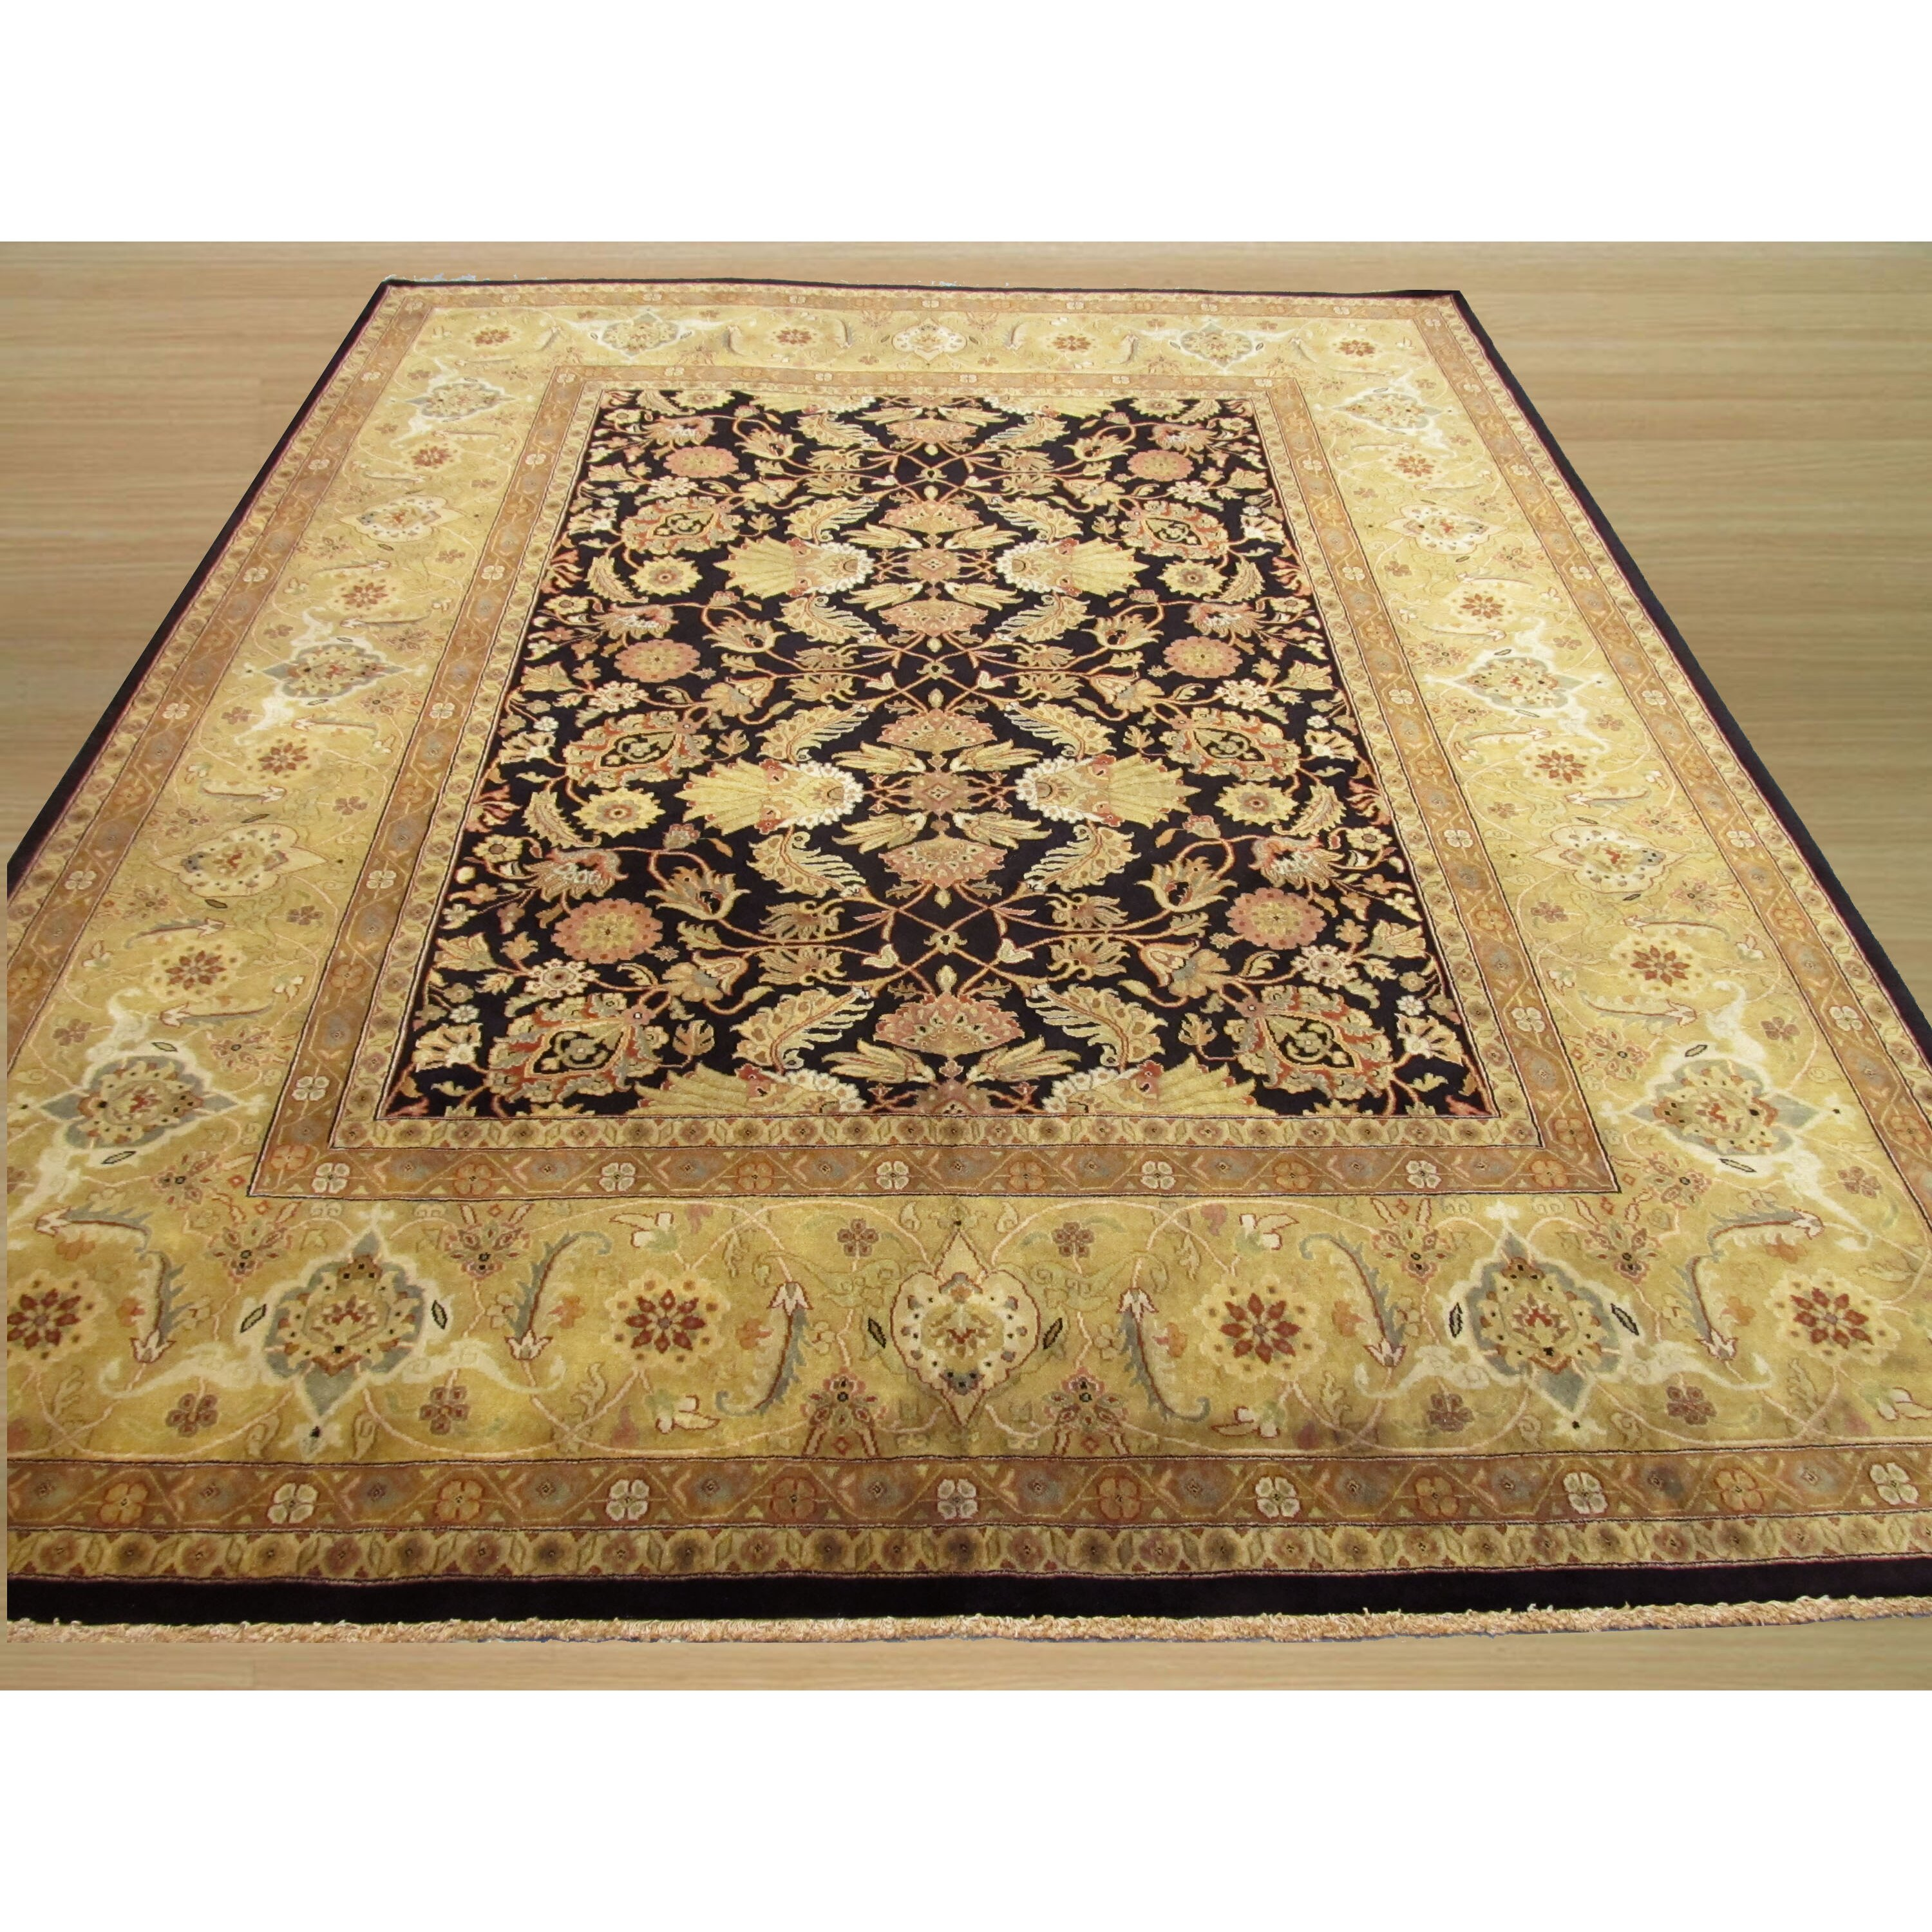 Eastern Rugs Tabriz New Zealand Hand Knotted Black Ivory